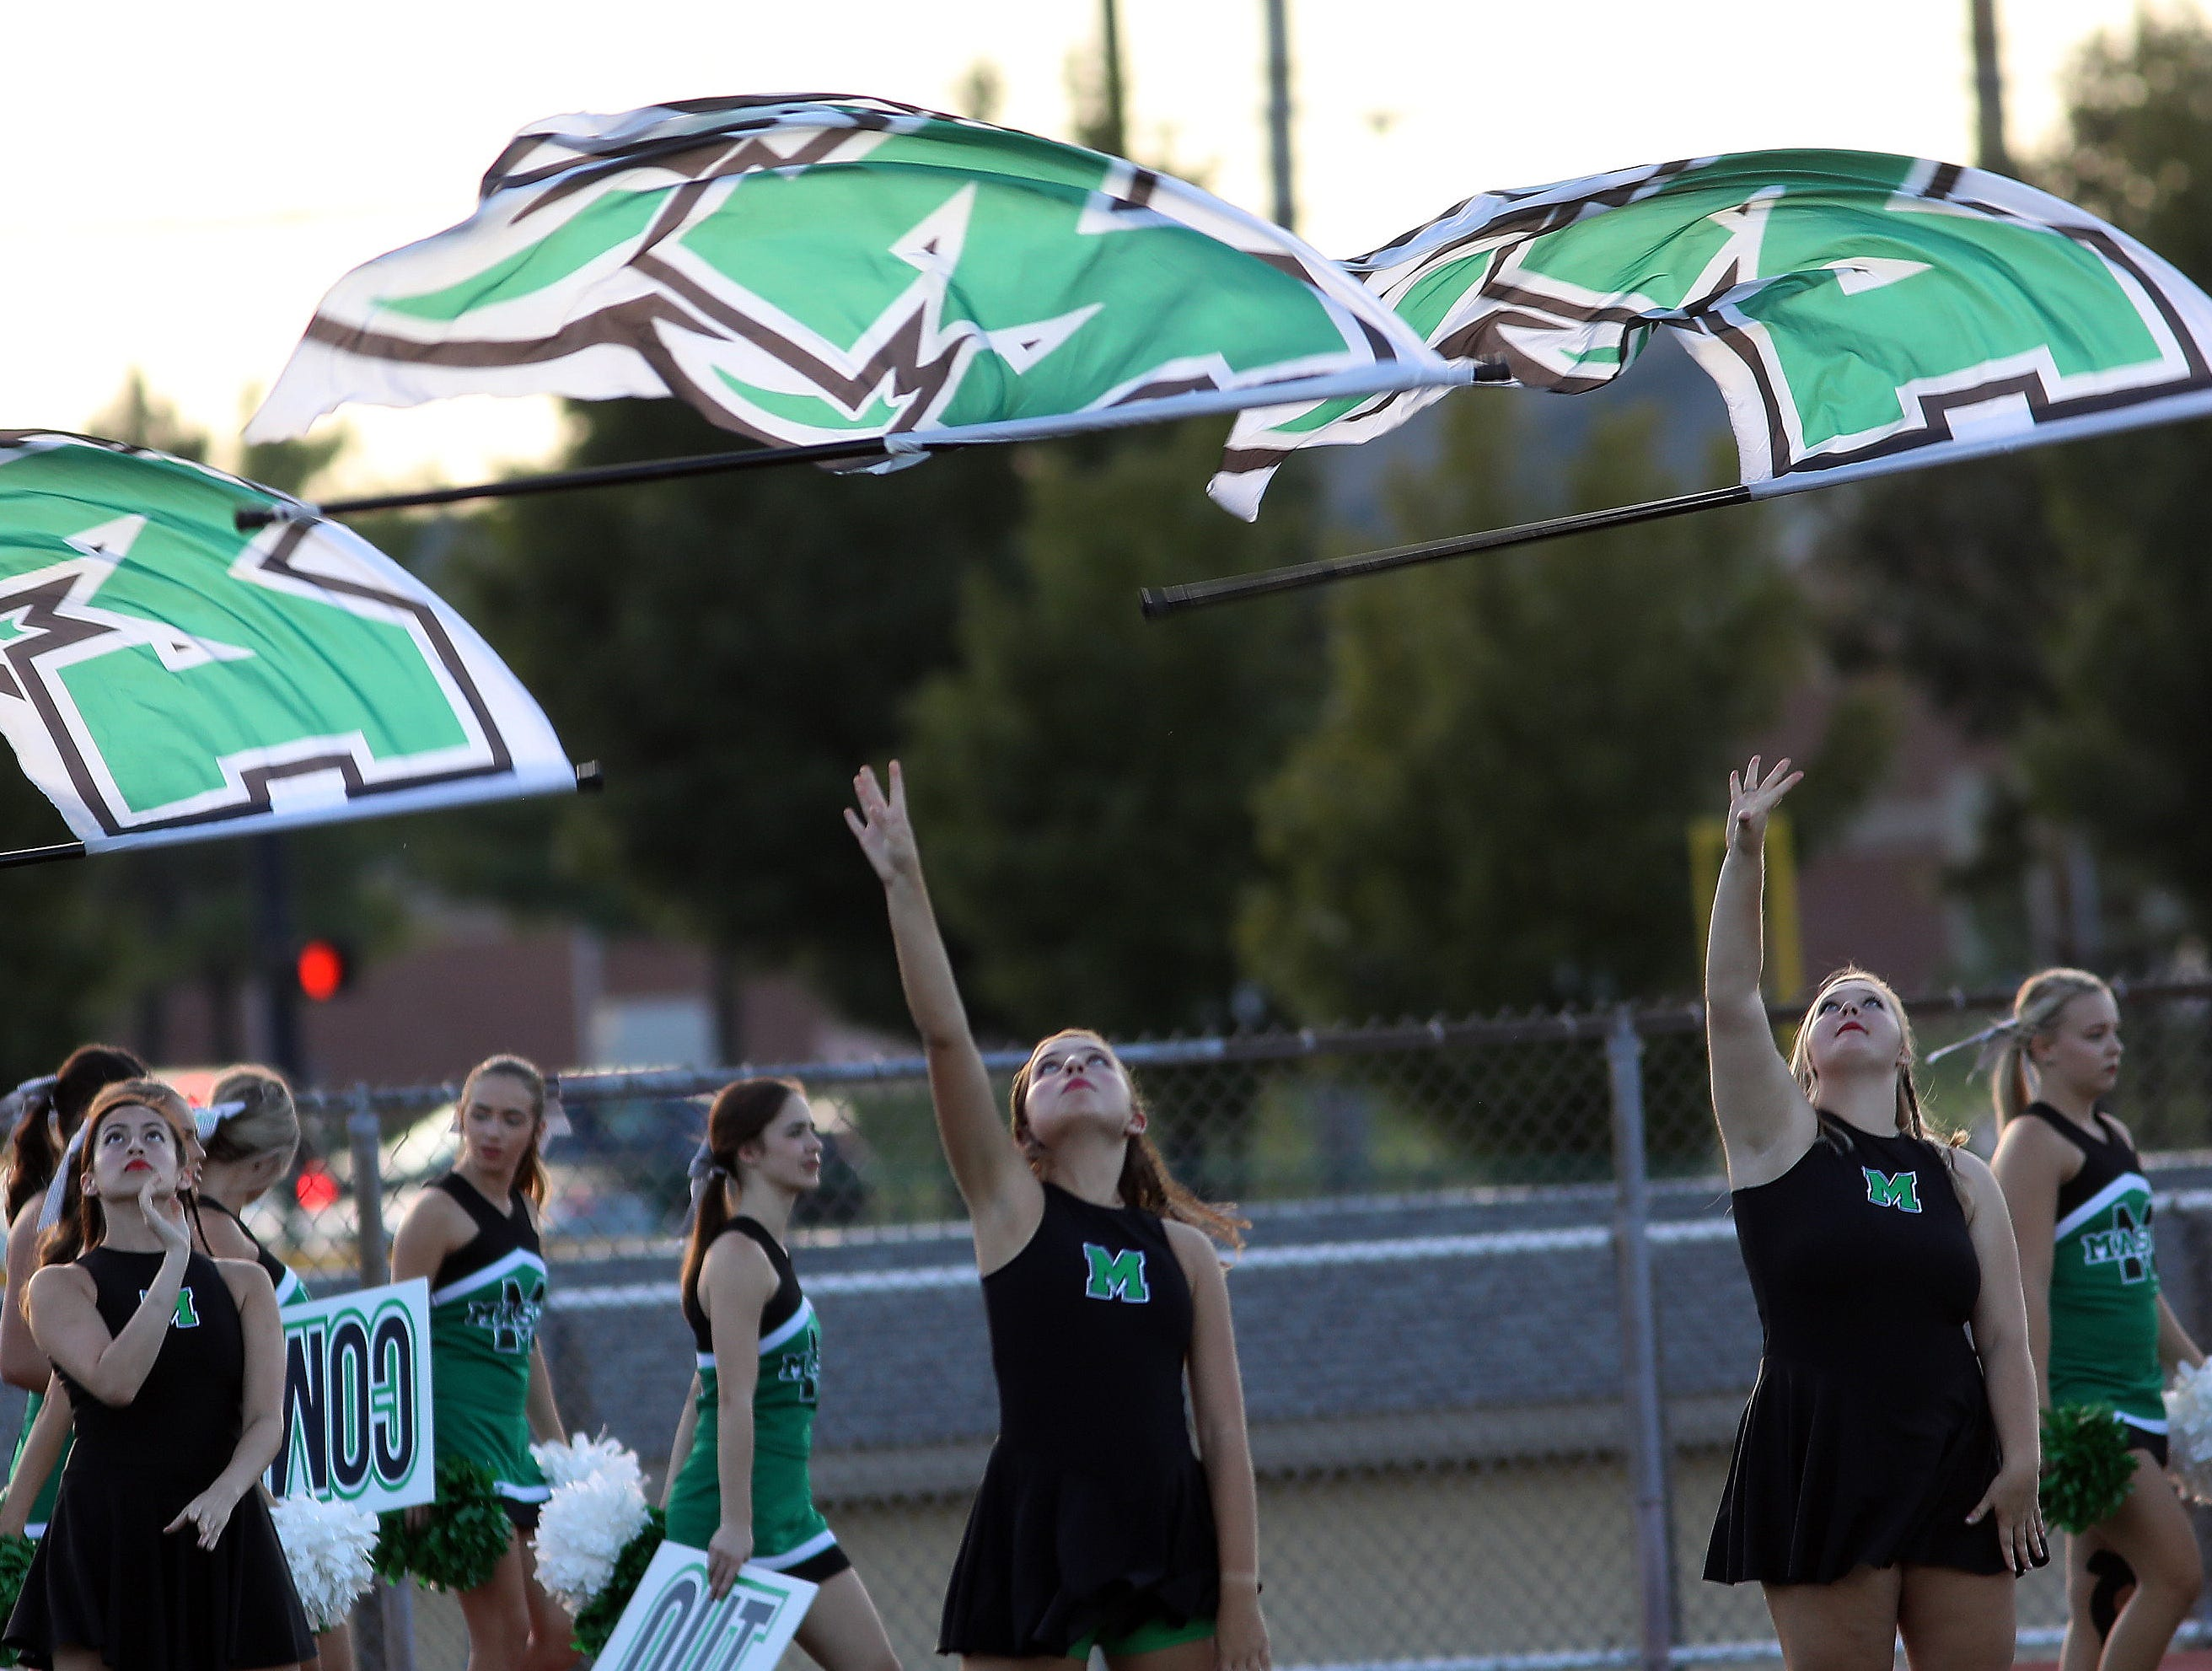 Mason's cheerleaders practice before the Comets' football game against Sycamore, Friday, Sept. 14, 2018.